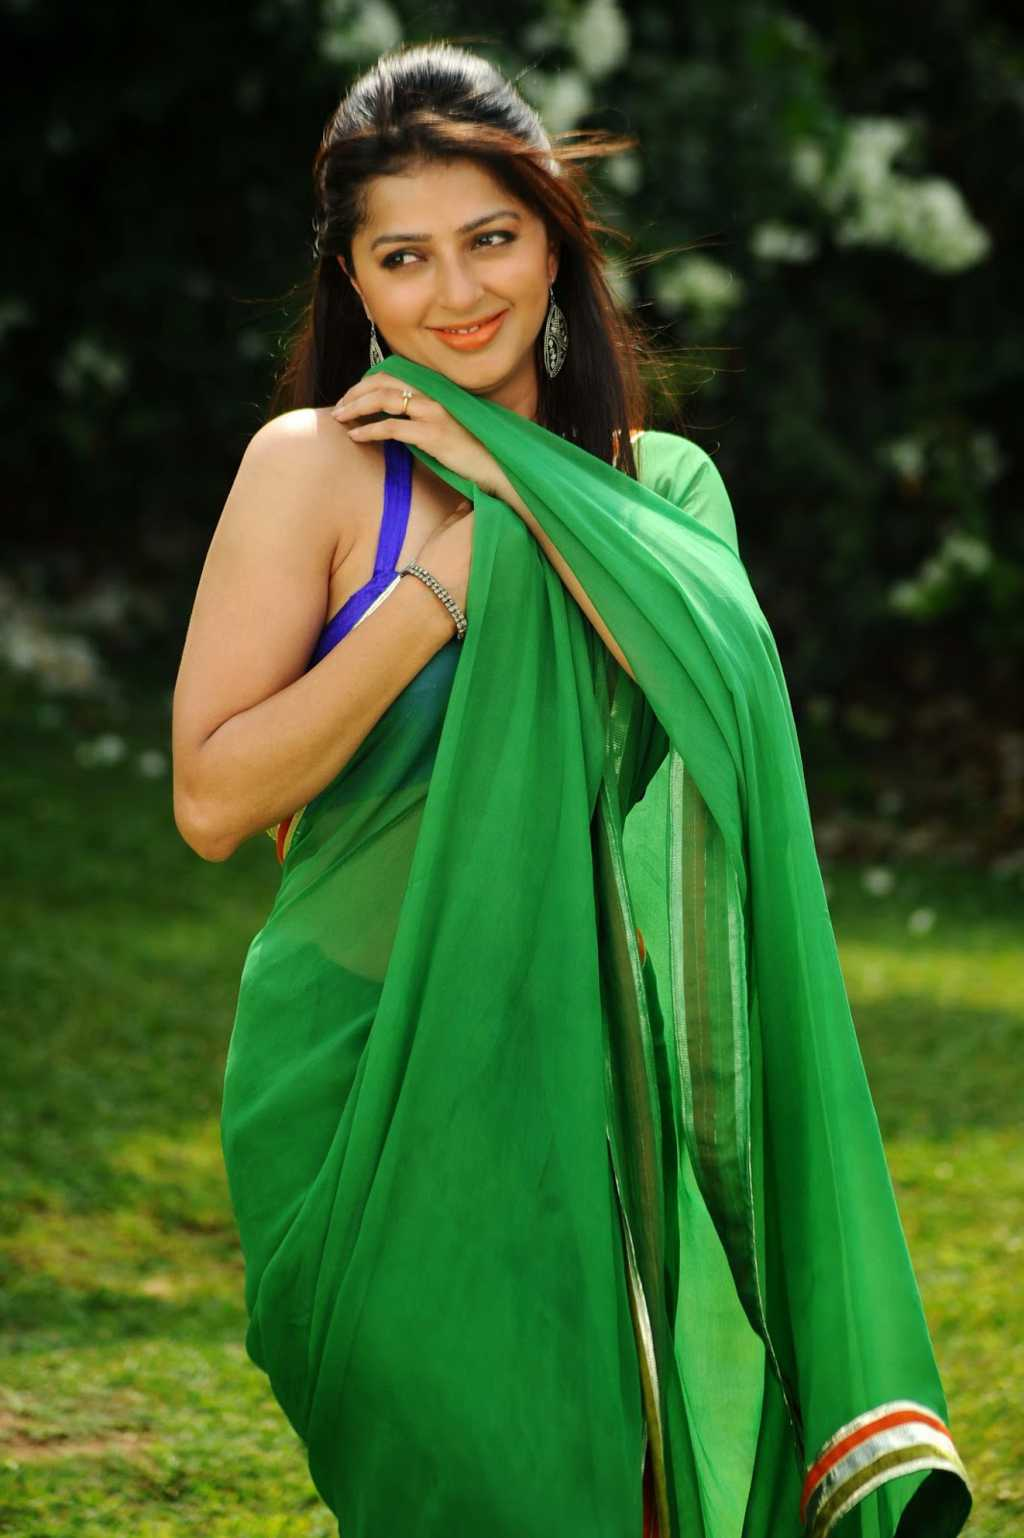 bhumika stills from april fool movie